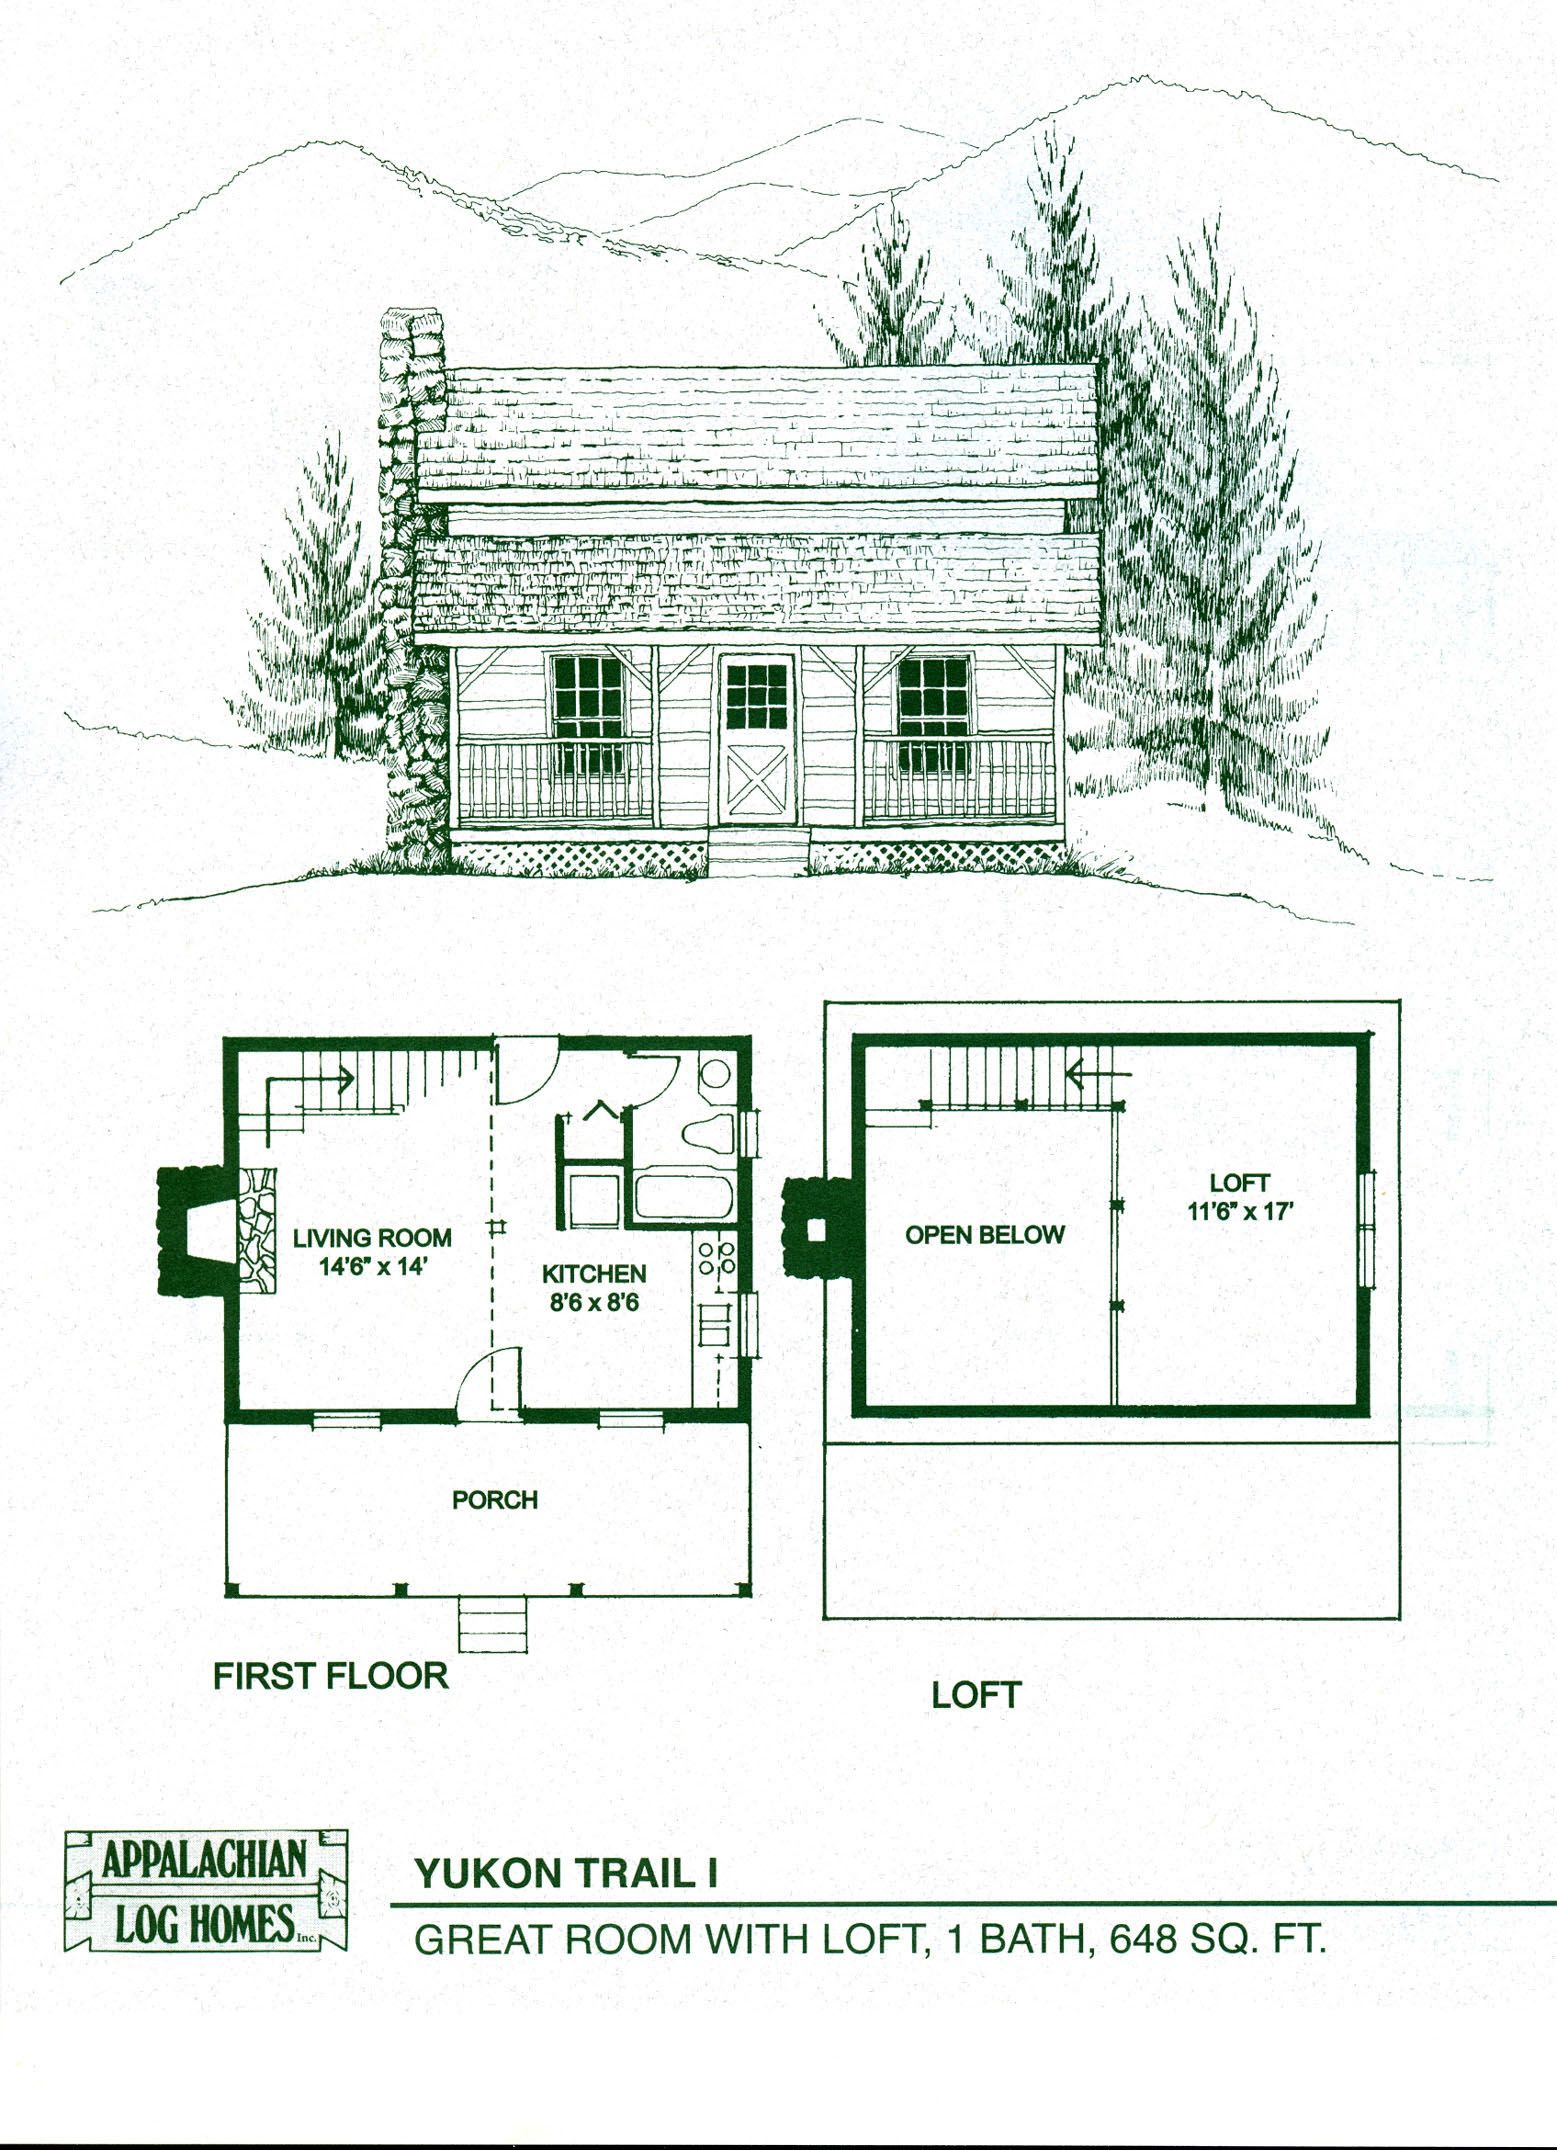 Log home floor plans log cabin kits appalachian log for Cabin floor plans